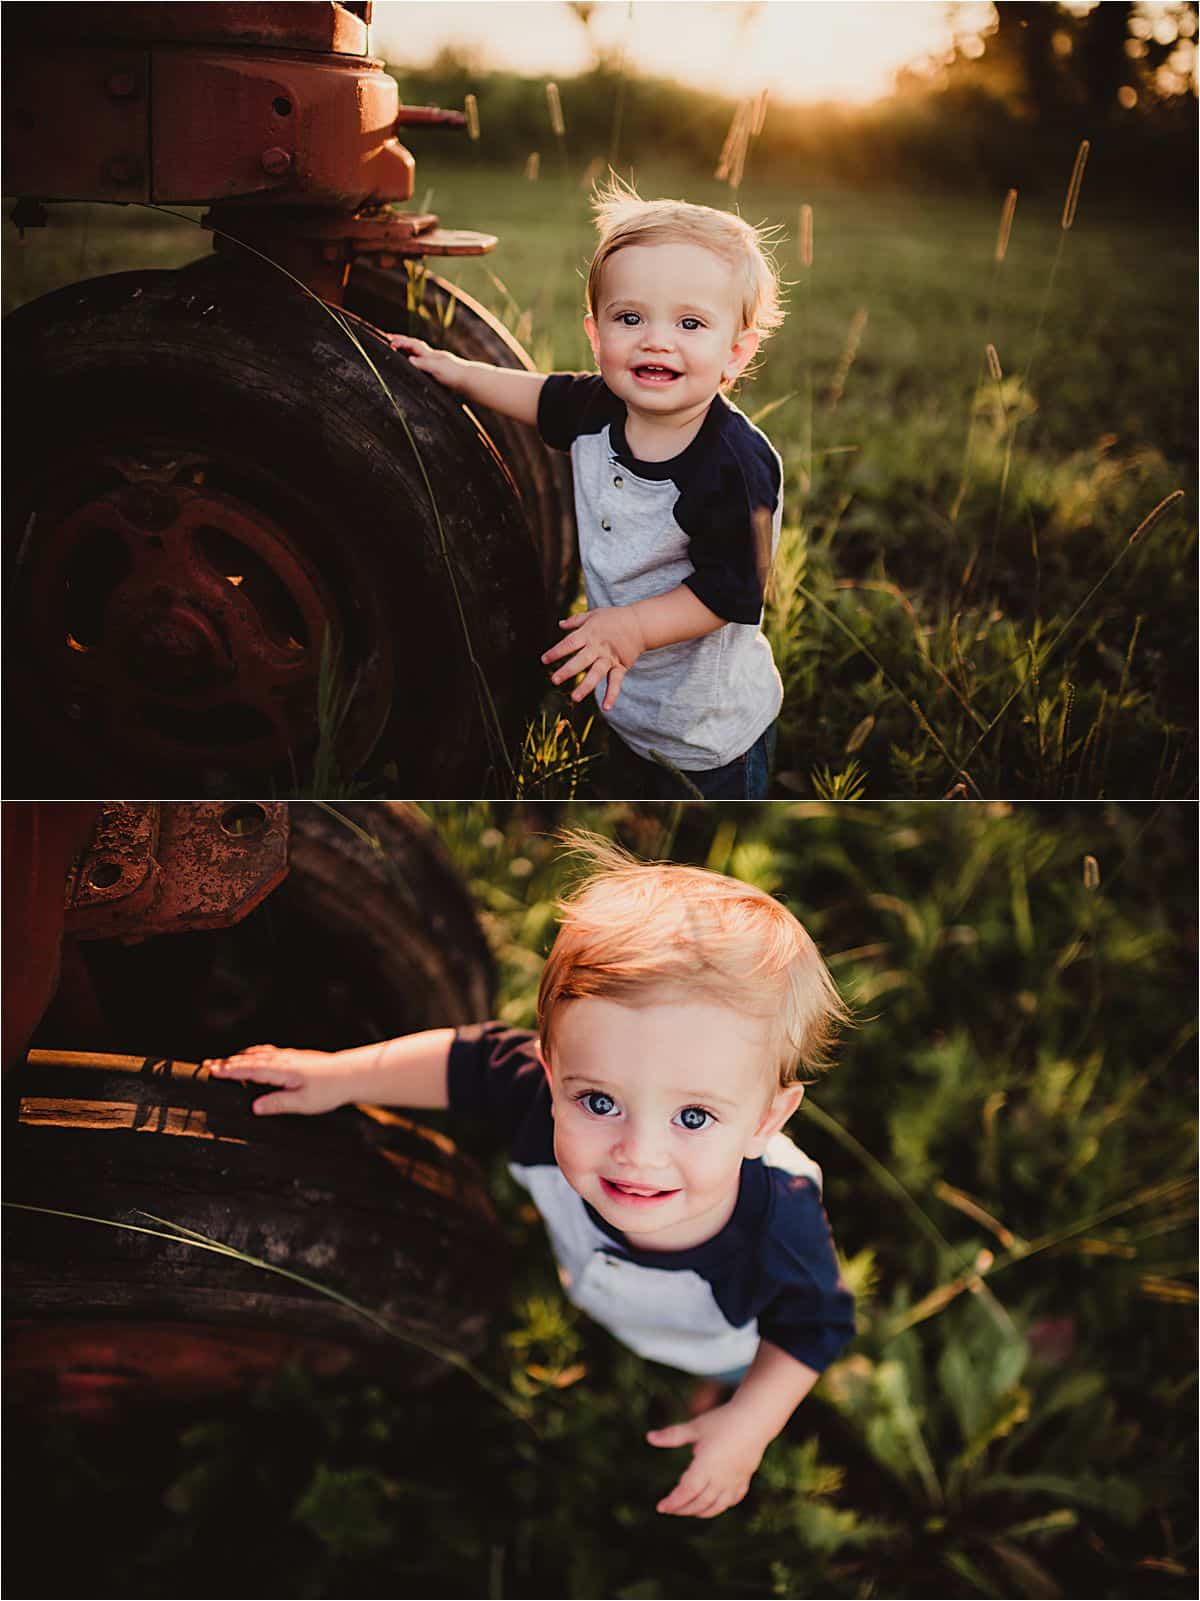 Little Brother by Tractor